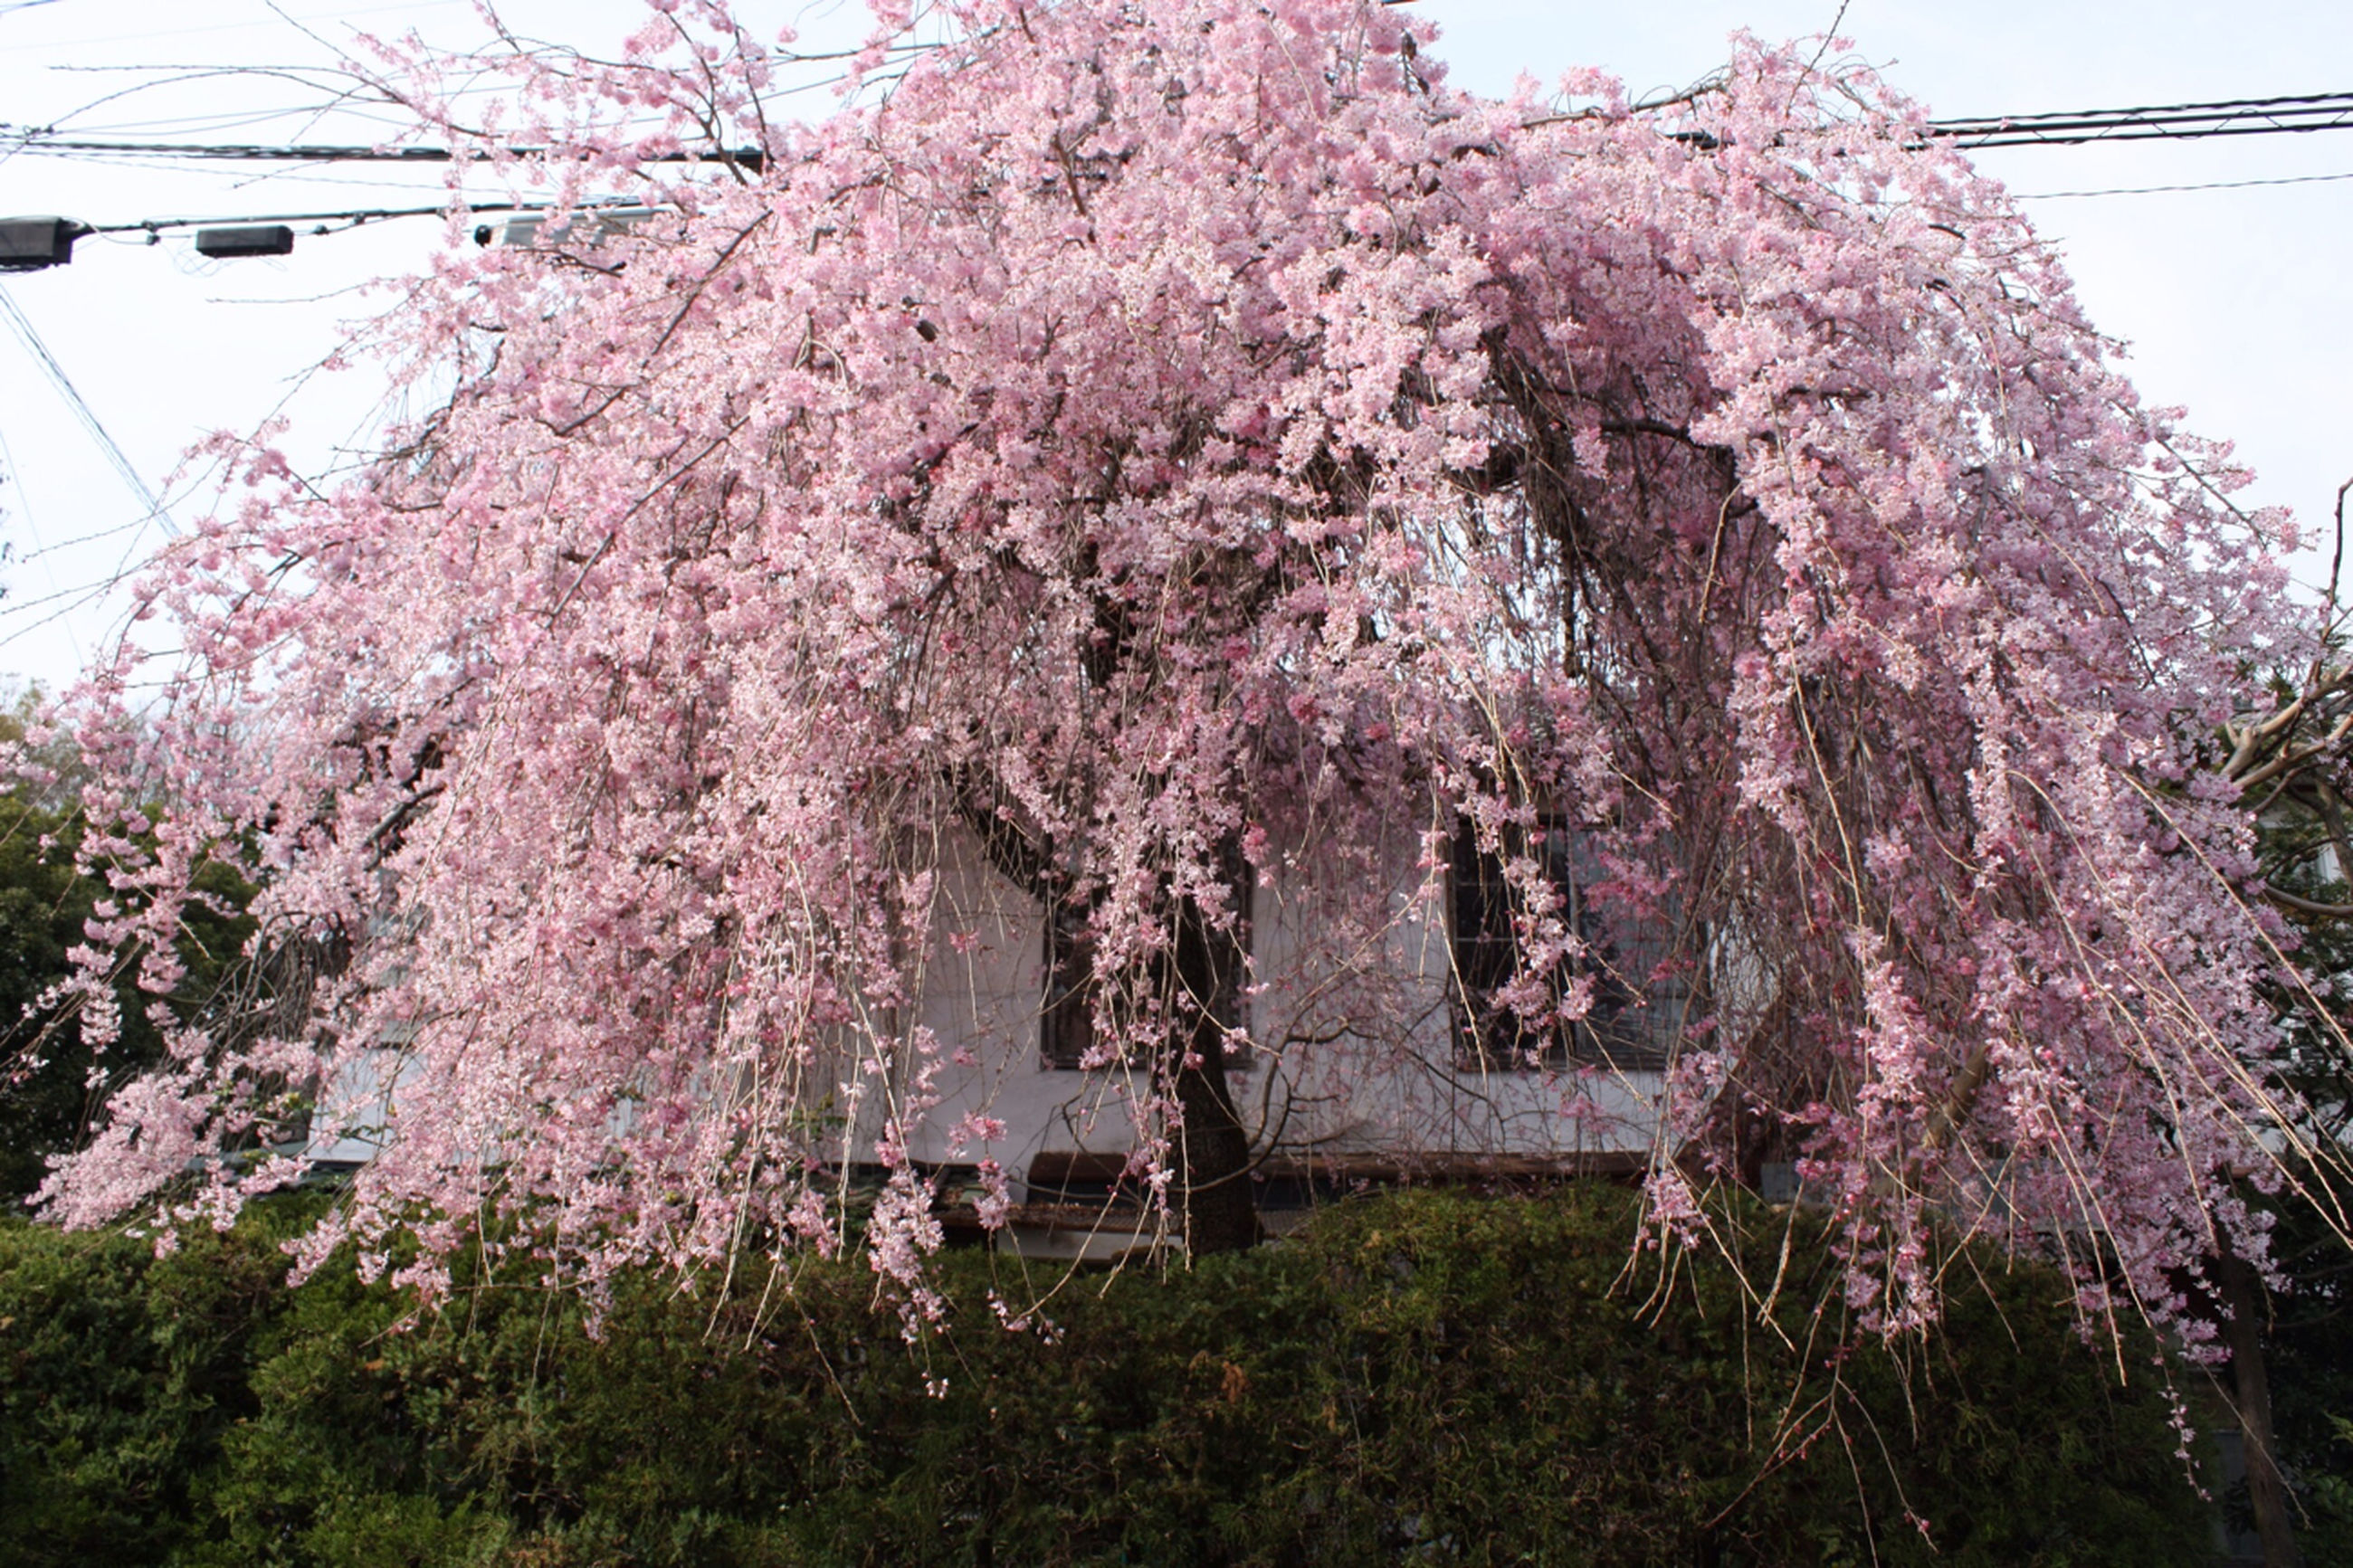 flower, tree, building exterior, growth, freshness, low angle view, branch, architecture, built structure, cherry blossom, fragility, cherry tree, blossom, nature, beauty in nature, in bloom, springtime, blooming, day, outdoors